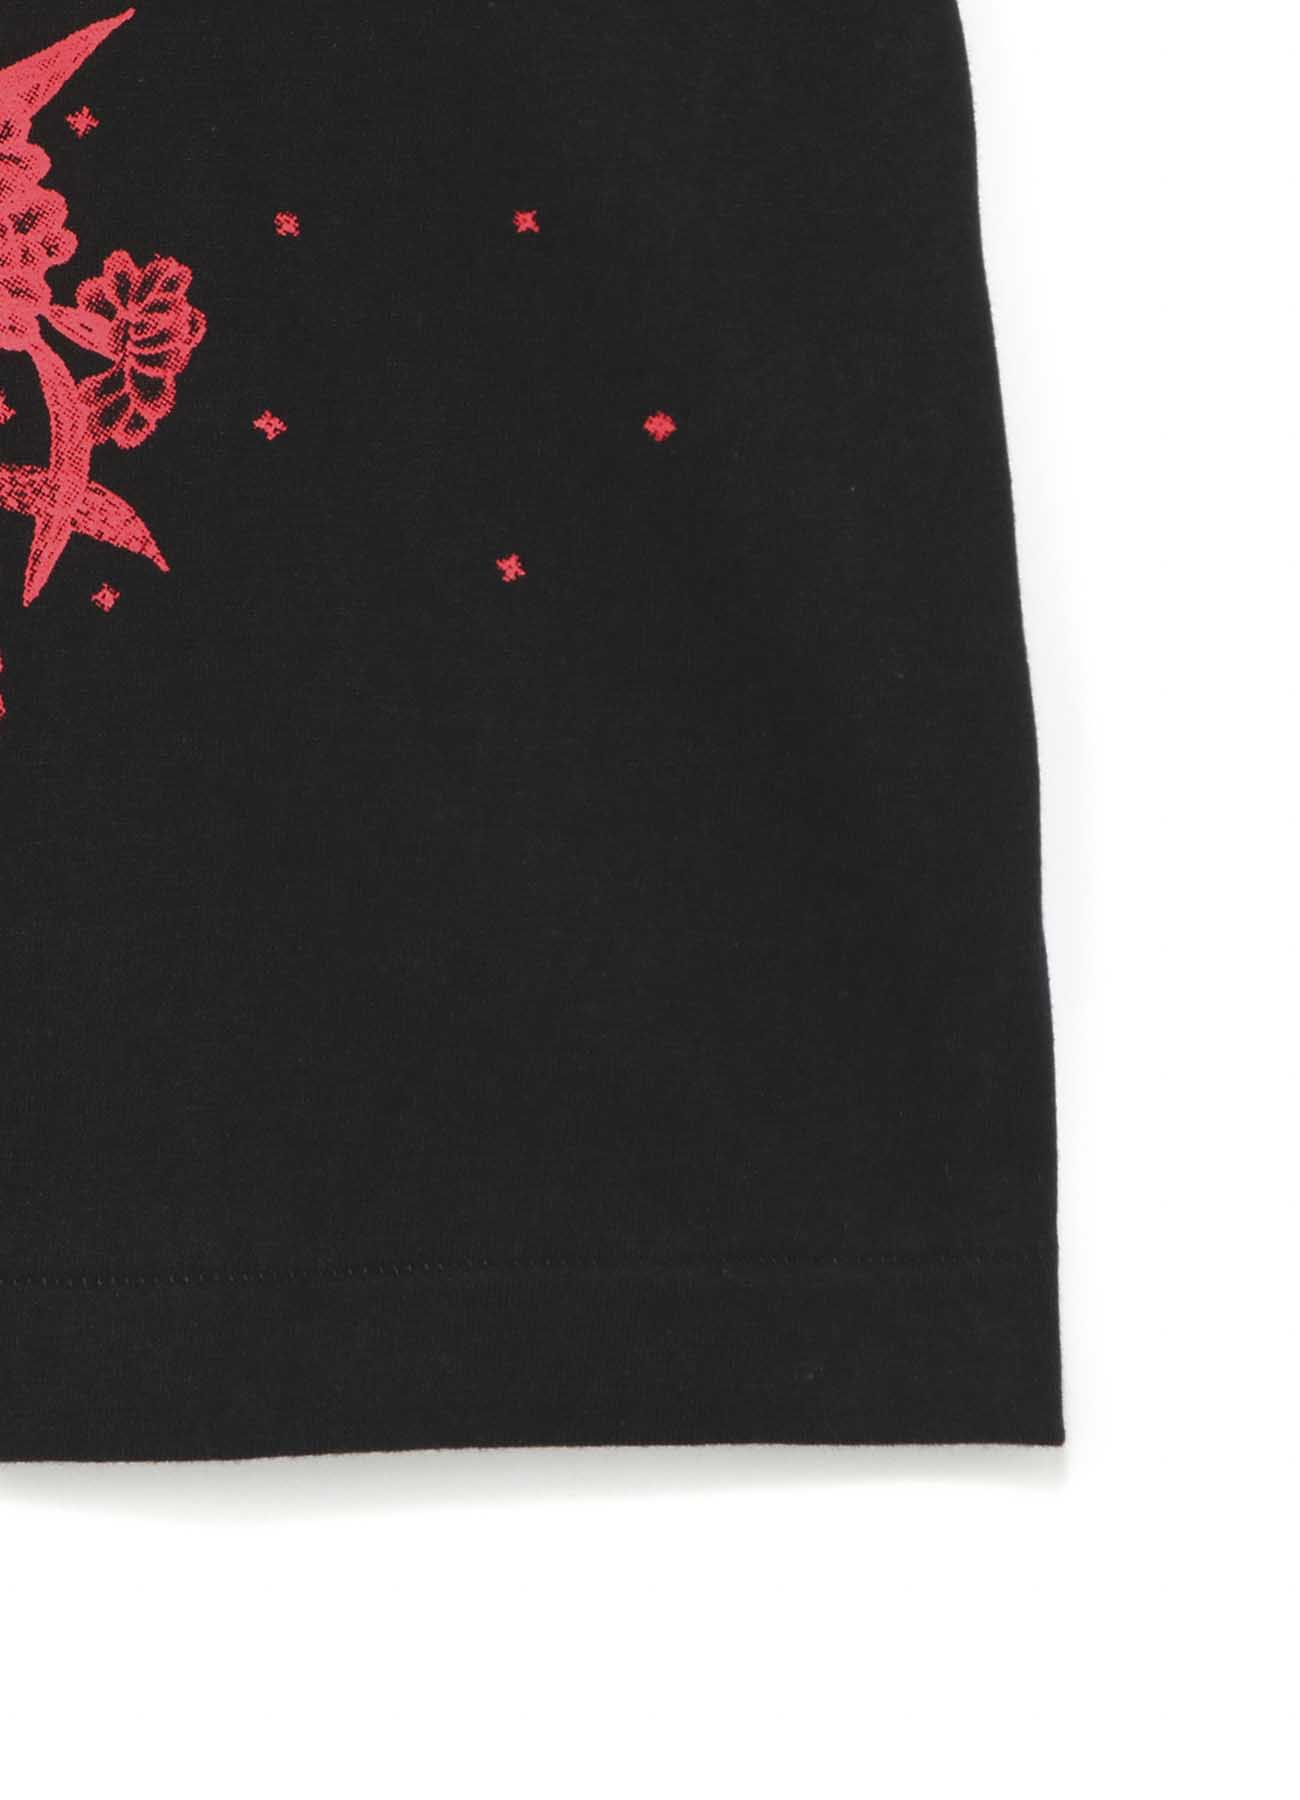 20/CottonJersey Batik Flower Heart T-Shirt